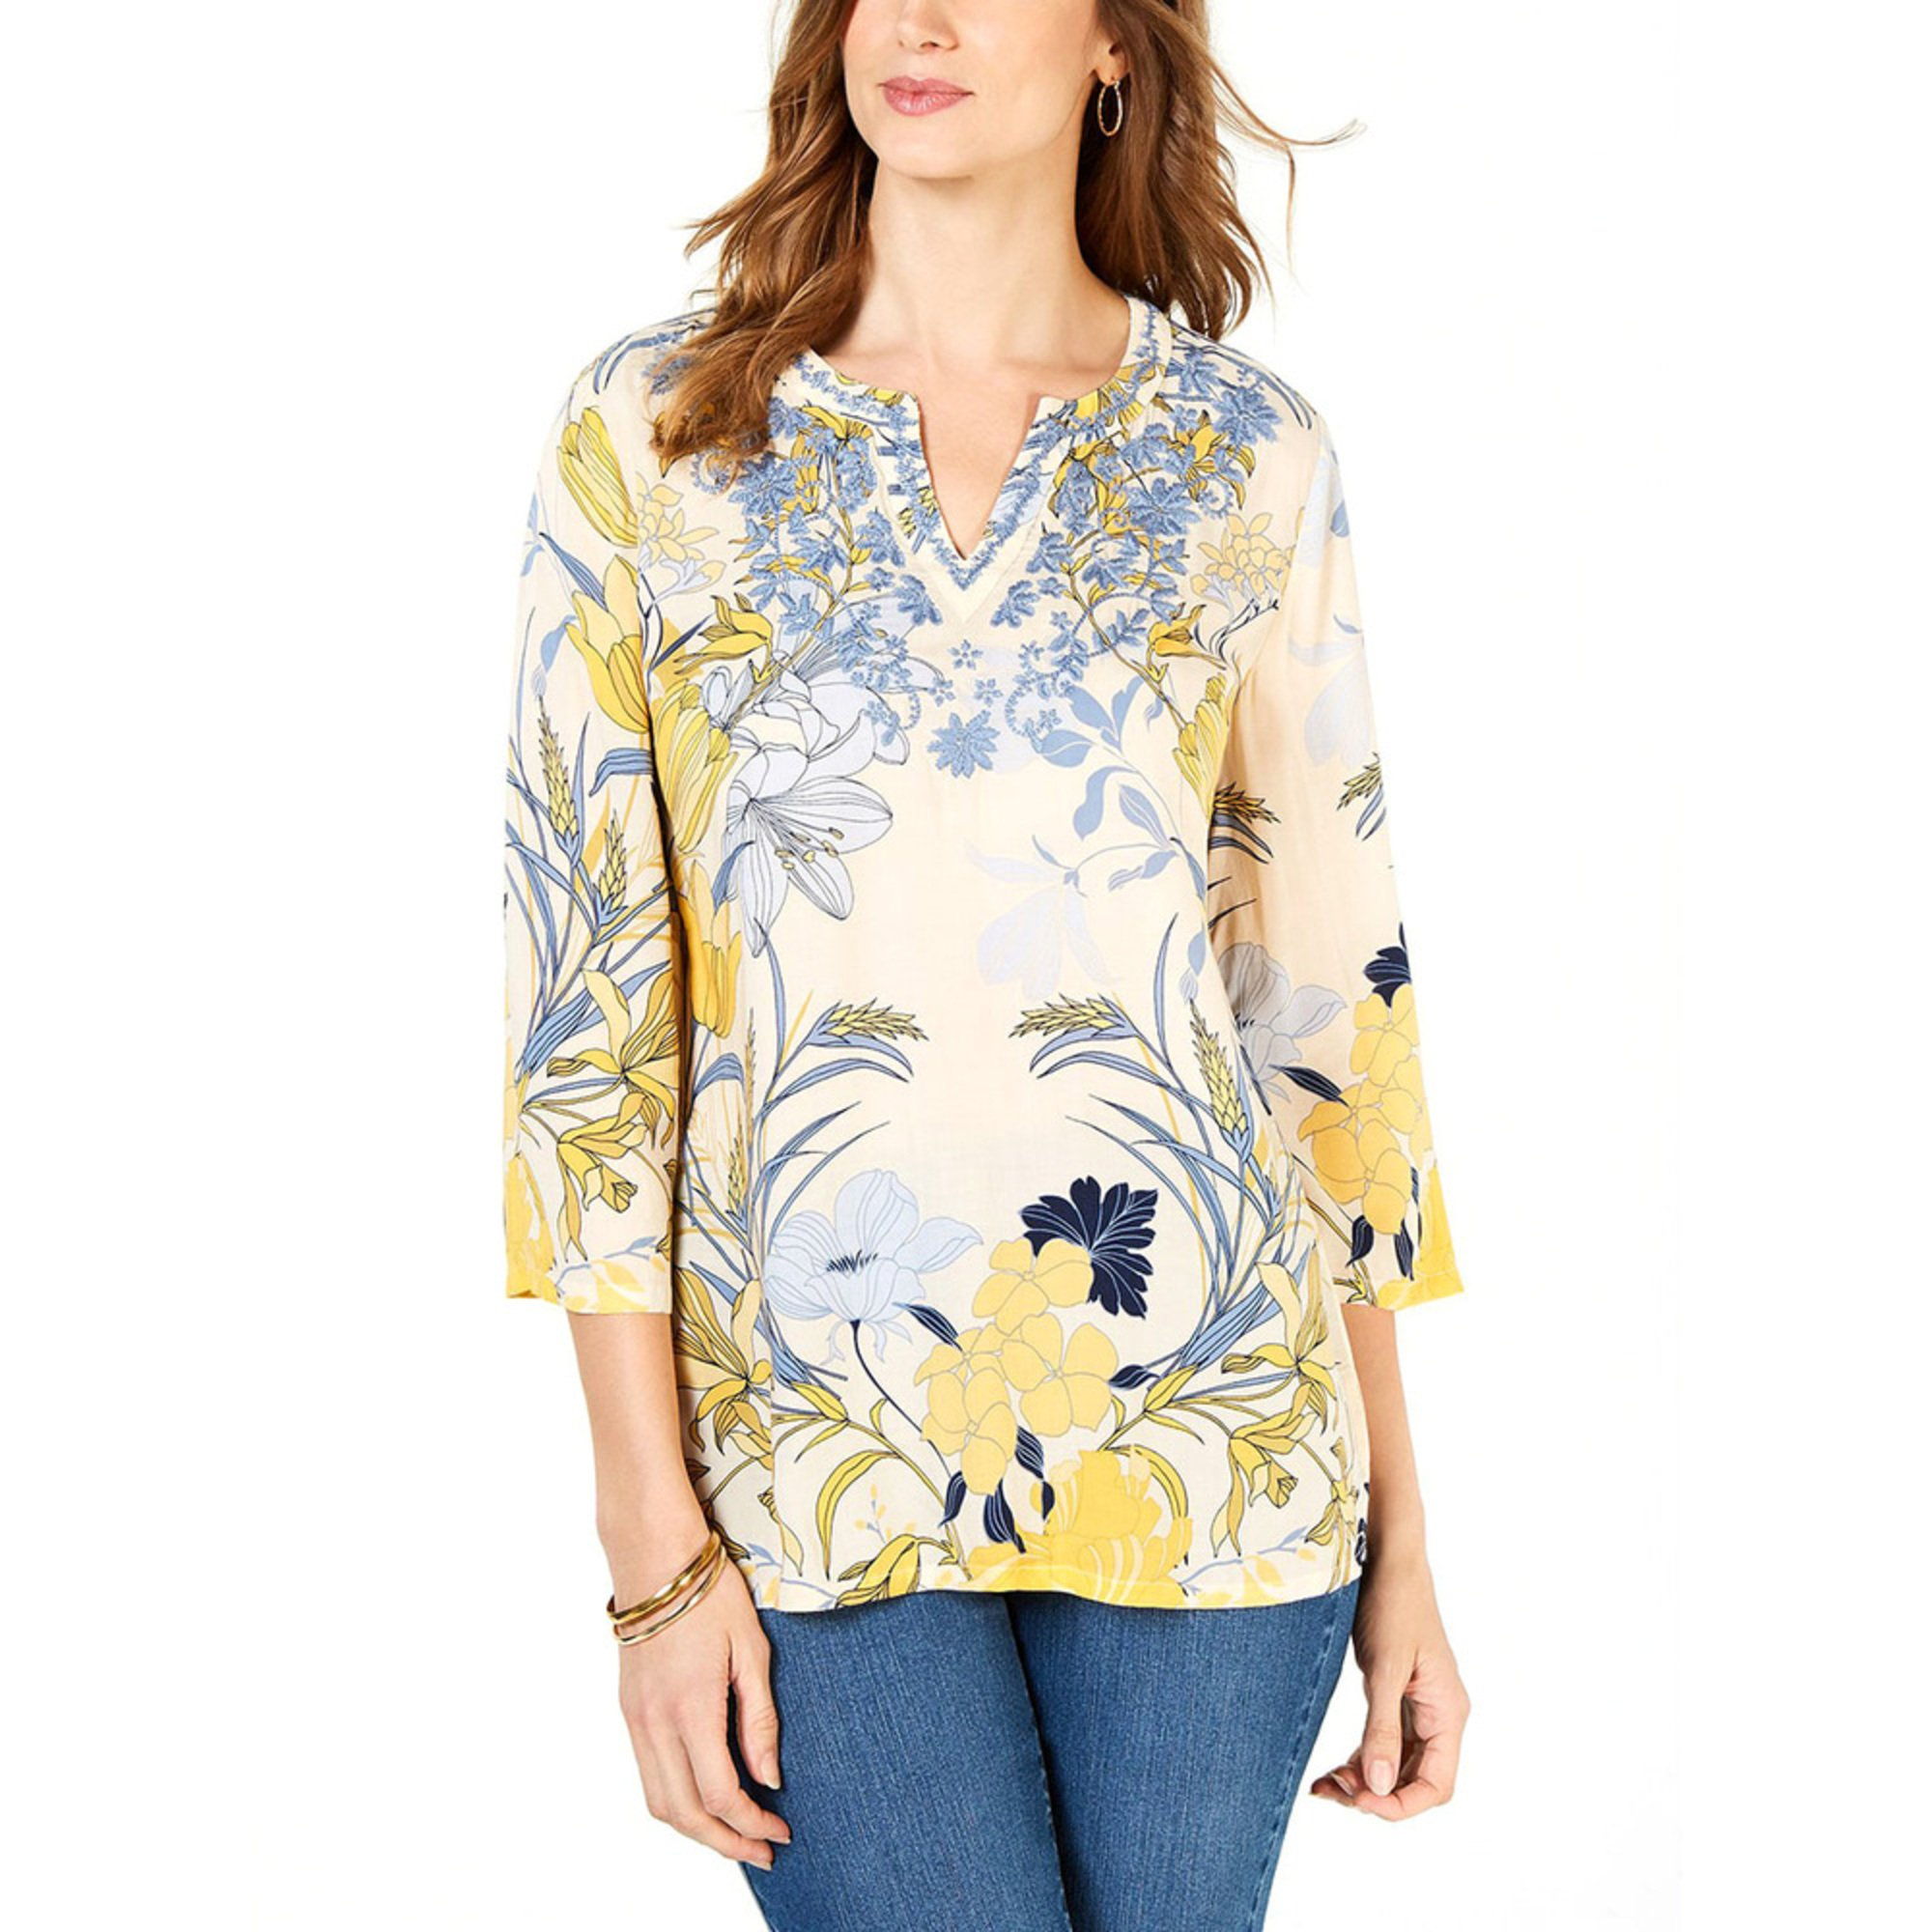 f8e9b3a8711 Charter Club. Charter Club Women's Exploded Floral Printed Rayon Tunic